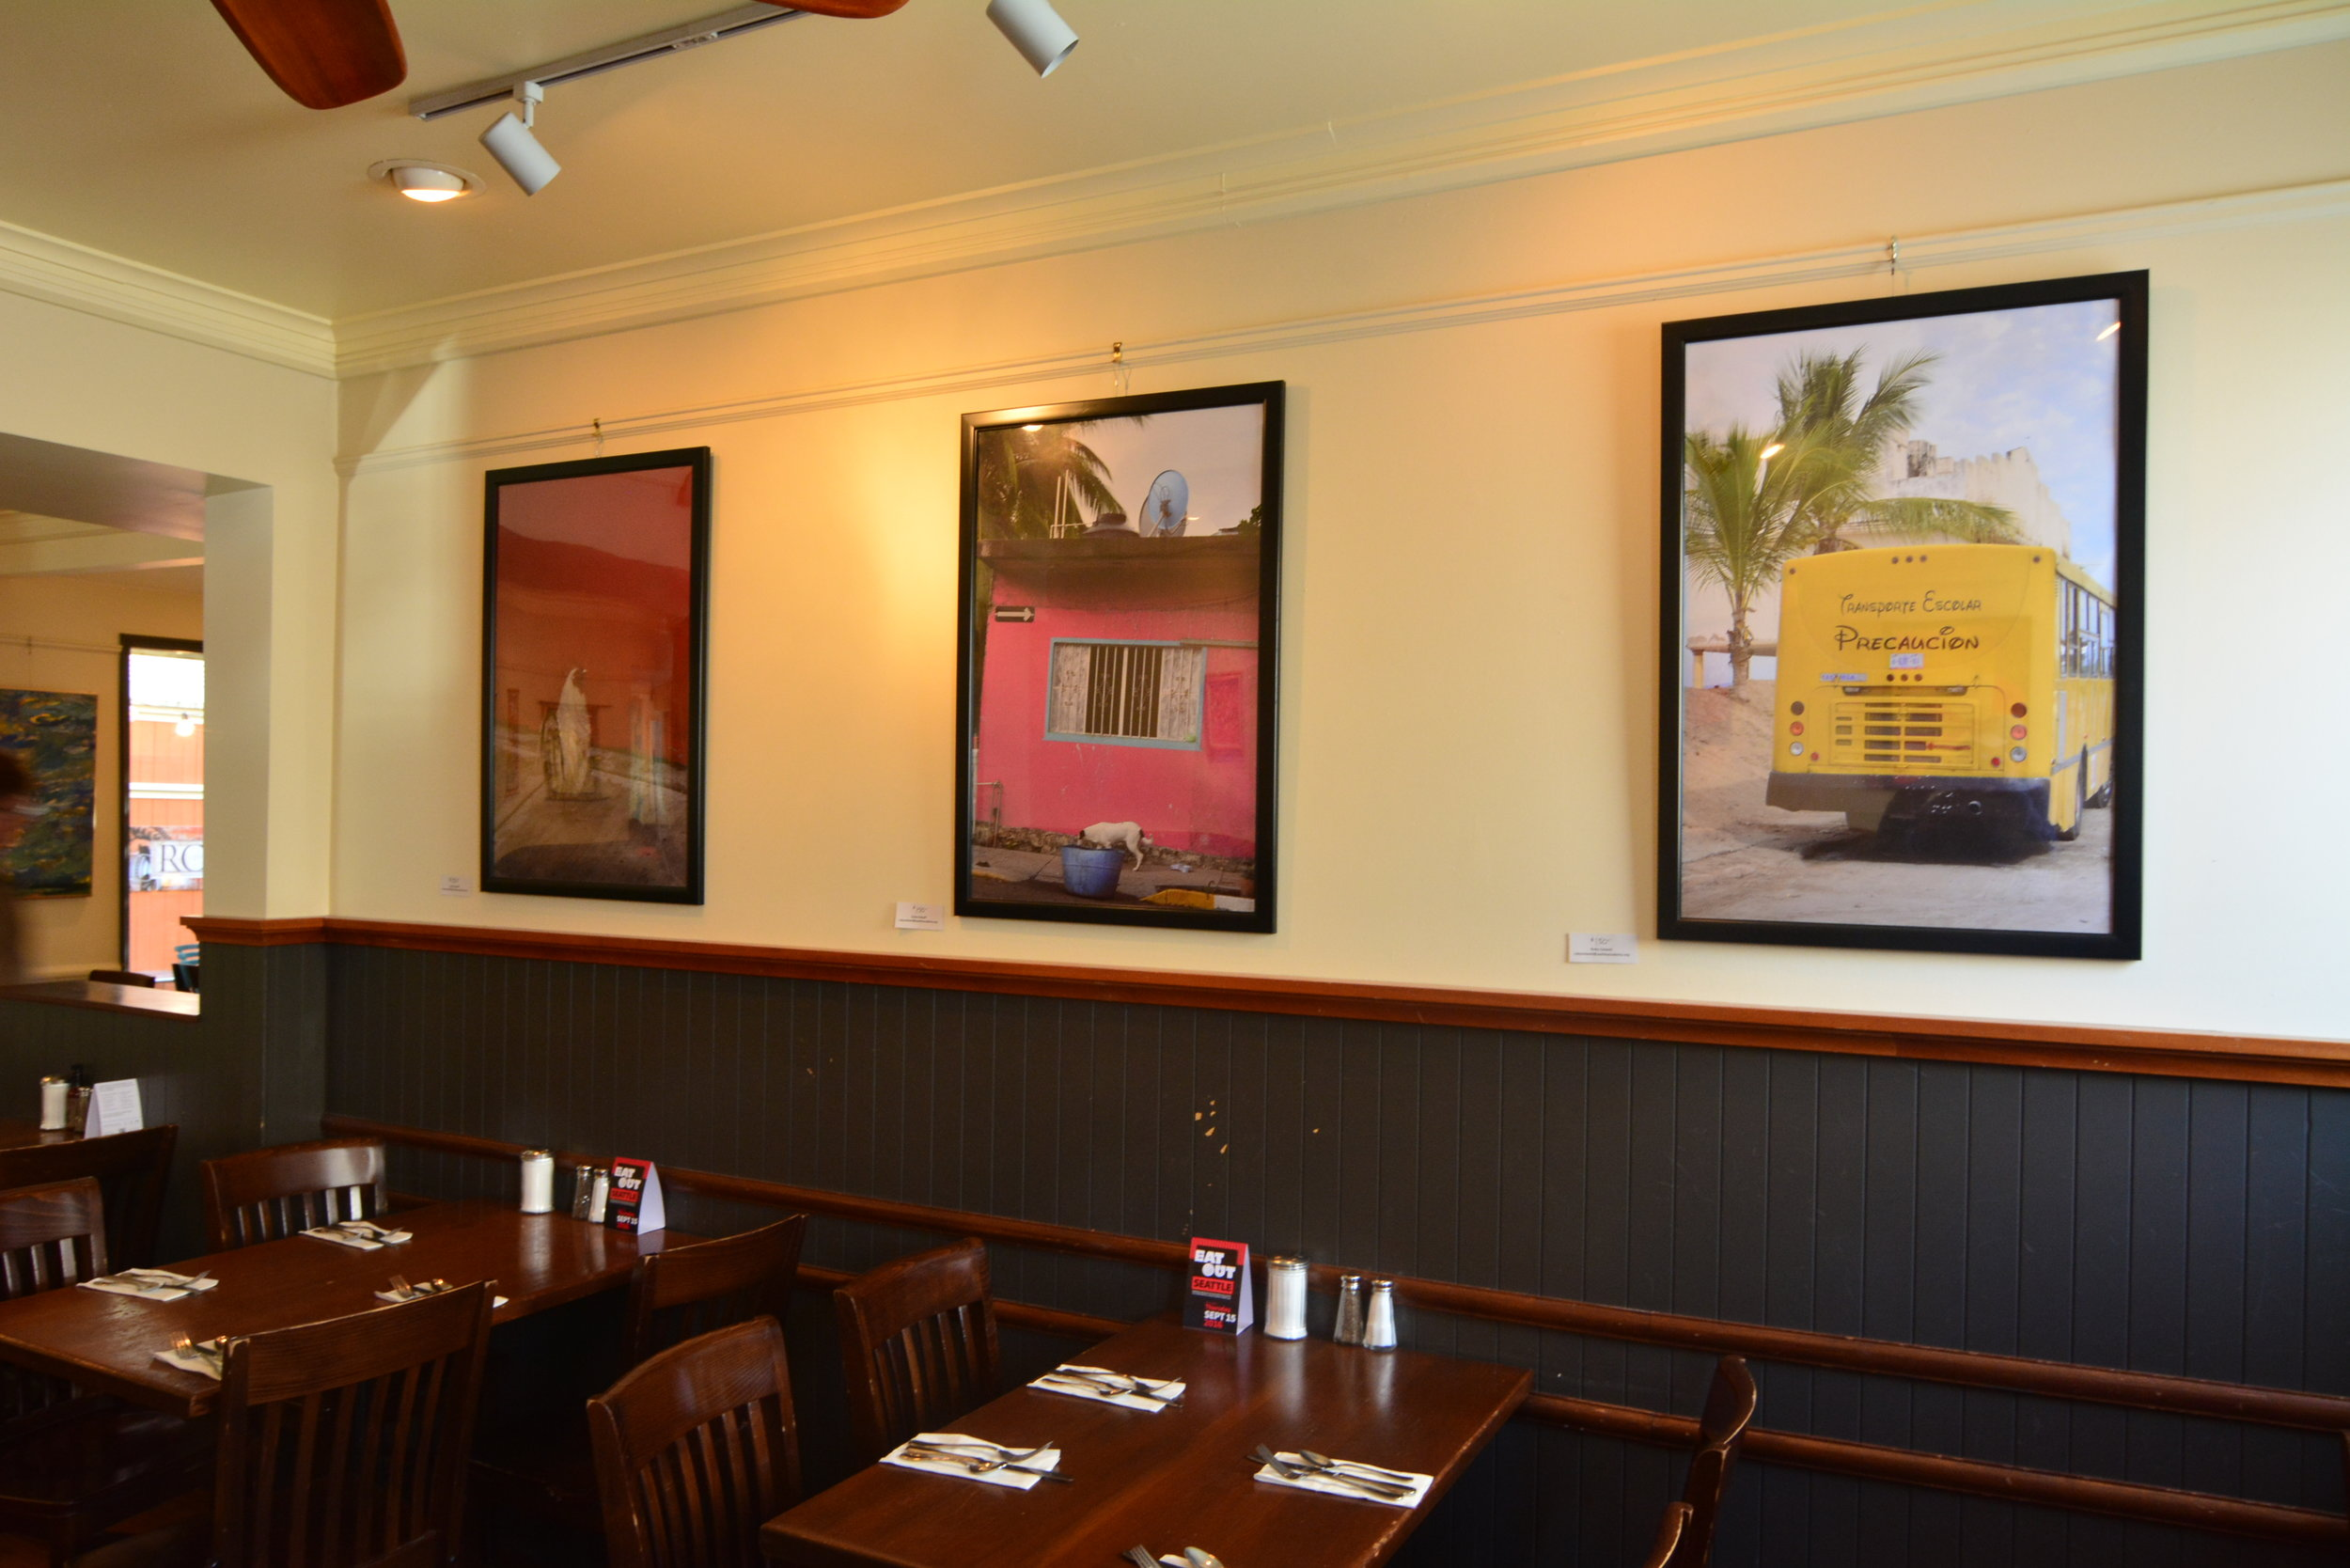 Ruby Colwell's photographs are on display at Coastal Kitchen.